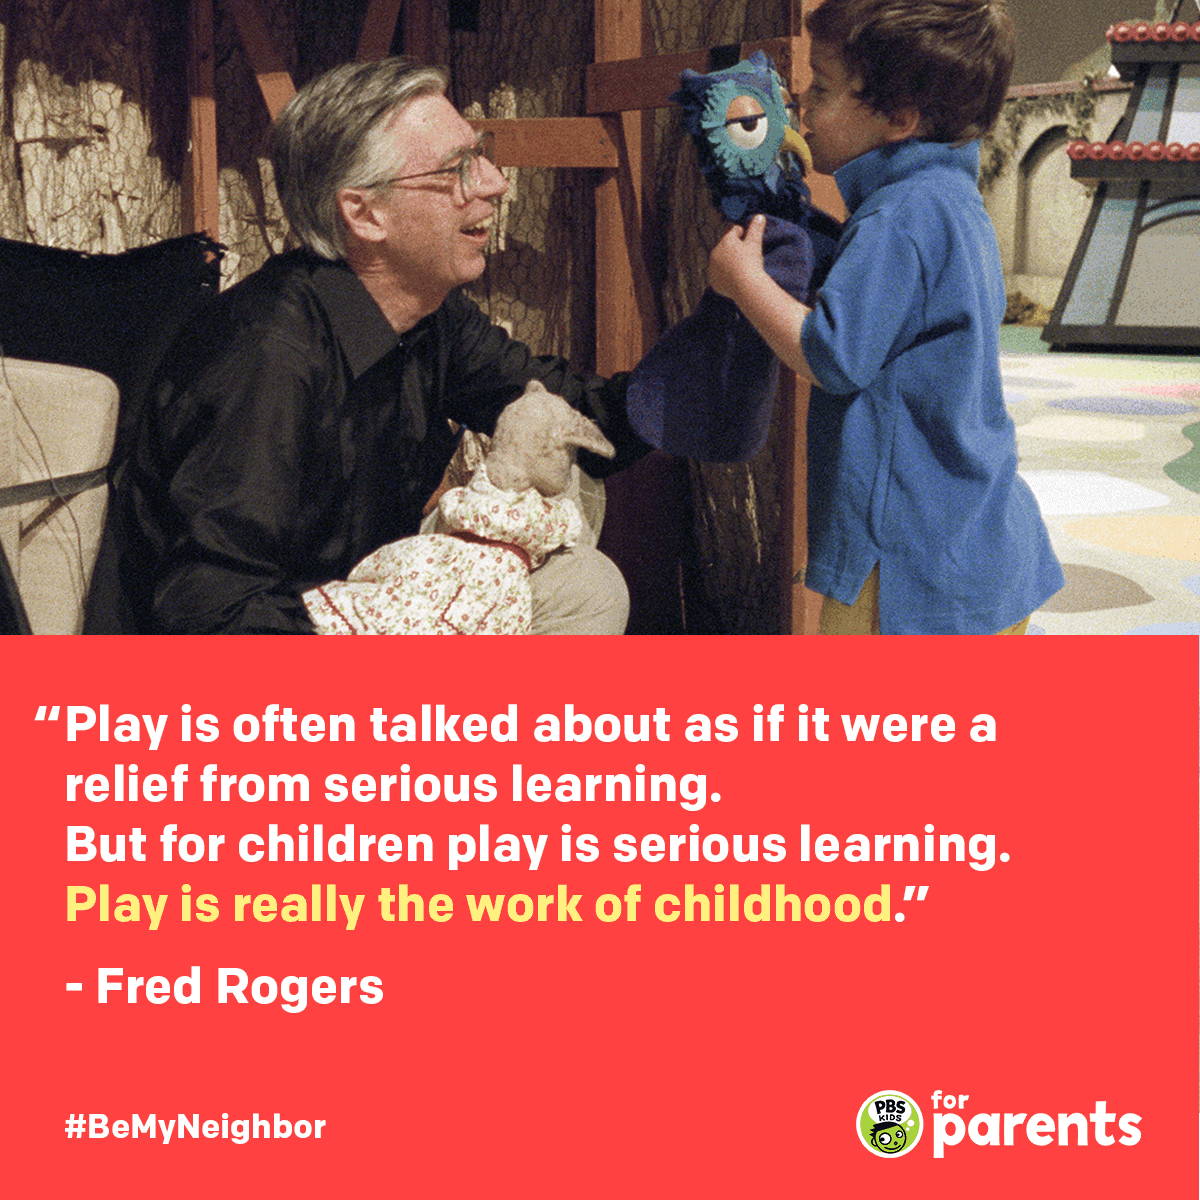 Best Quotes From Mister Rogers Parenting Tips Pbs Kids For Parents